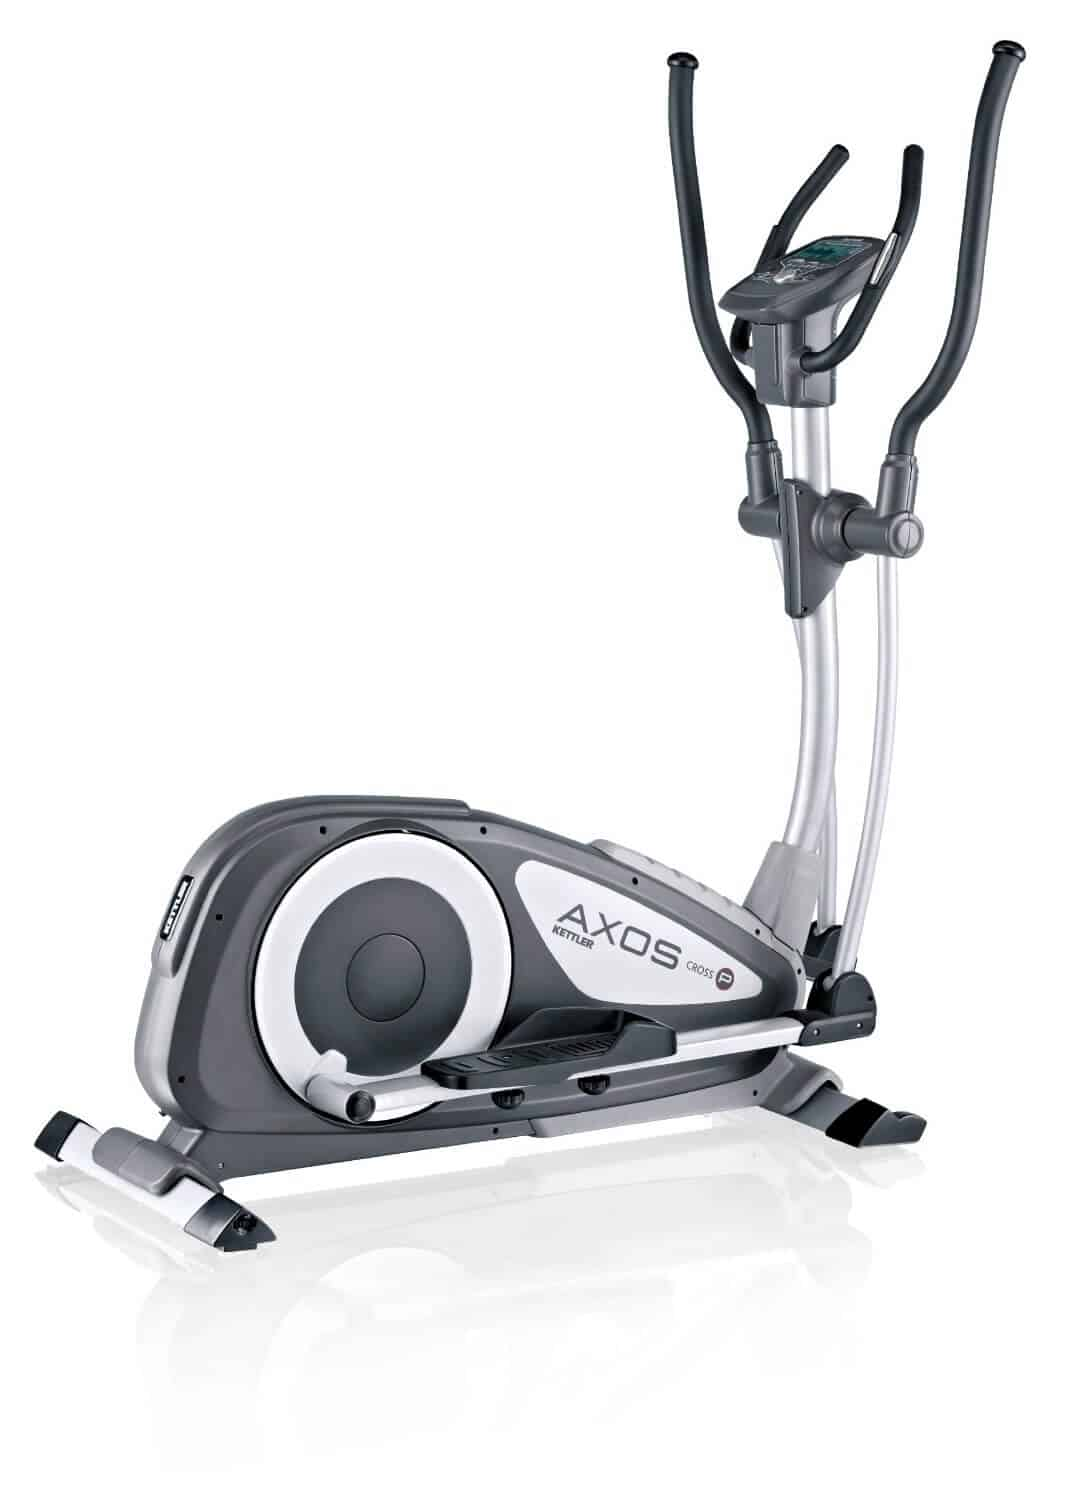 Kettler Fitness Kettler Cross Trainer Review 2017 2018